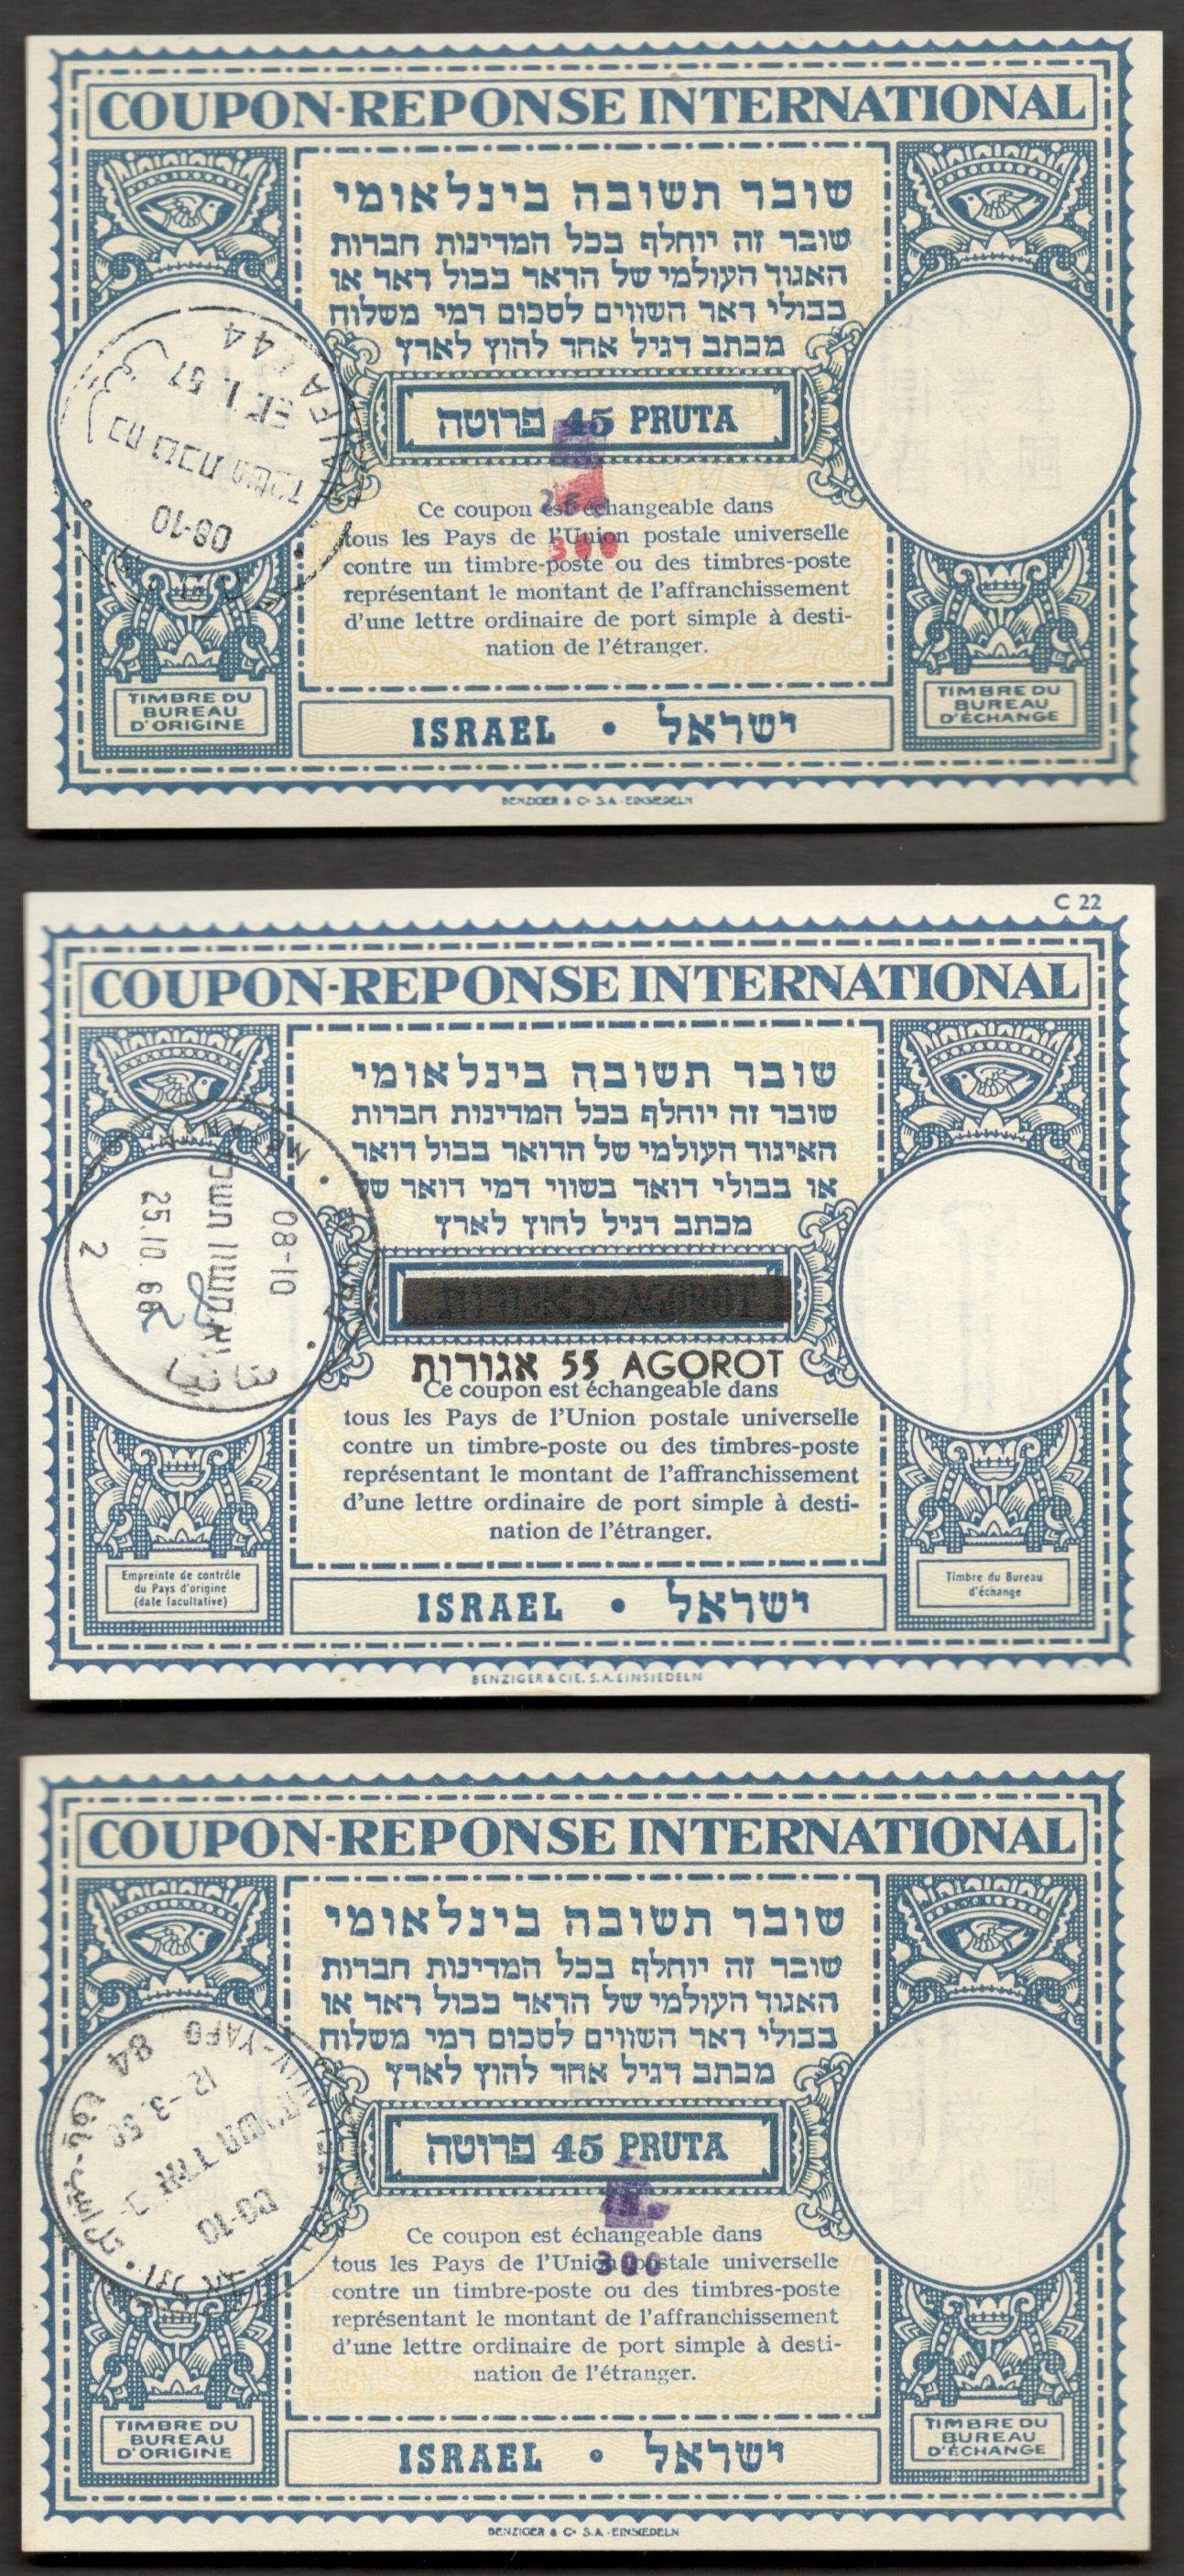 Lot 28 - ISRAEL REPLY COUPONS WITH SURCHARGES (3)